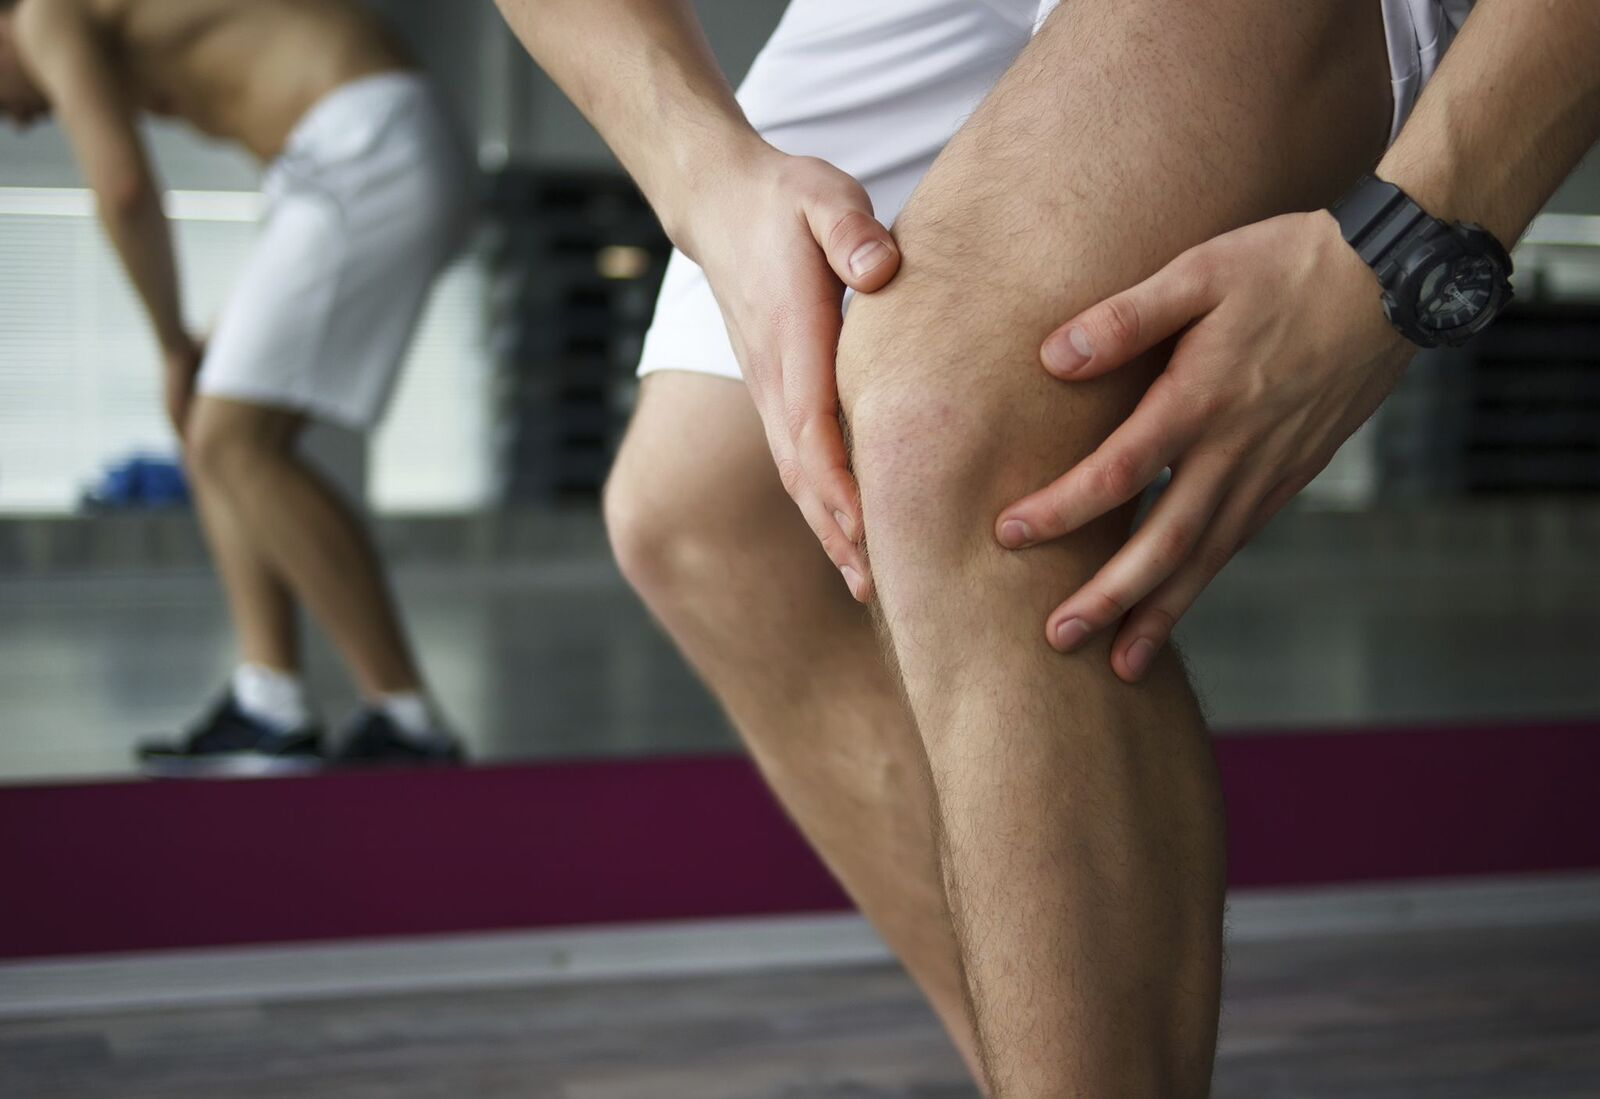 joint pain, workout pain, muscle pain